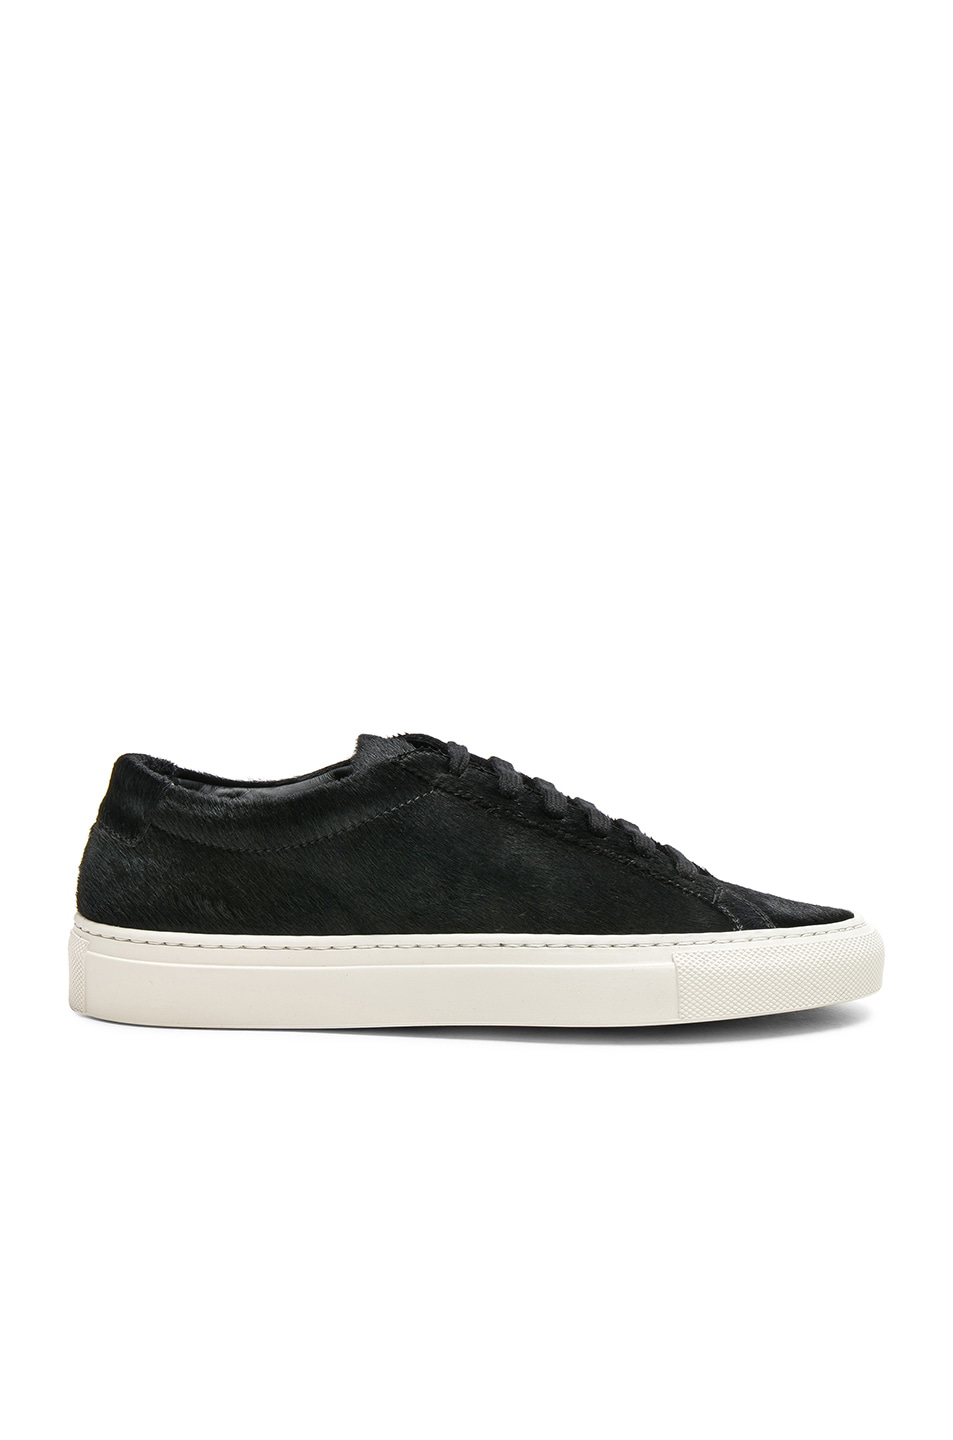 outlet original cheap price wholesale price Common Projects calf hair sneakers UVUaTl0H